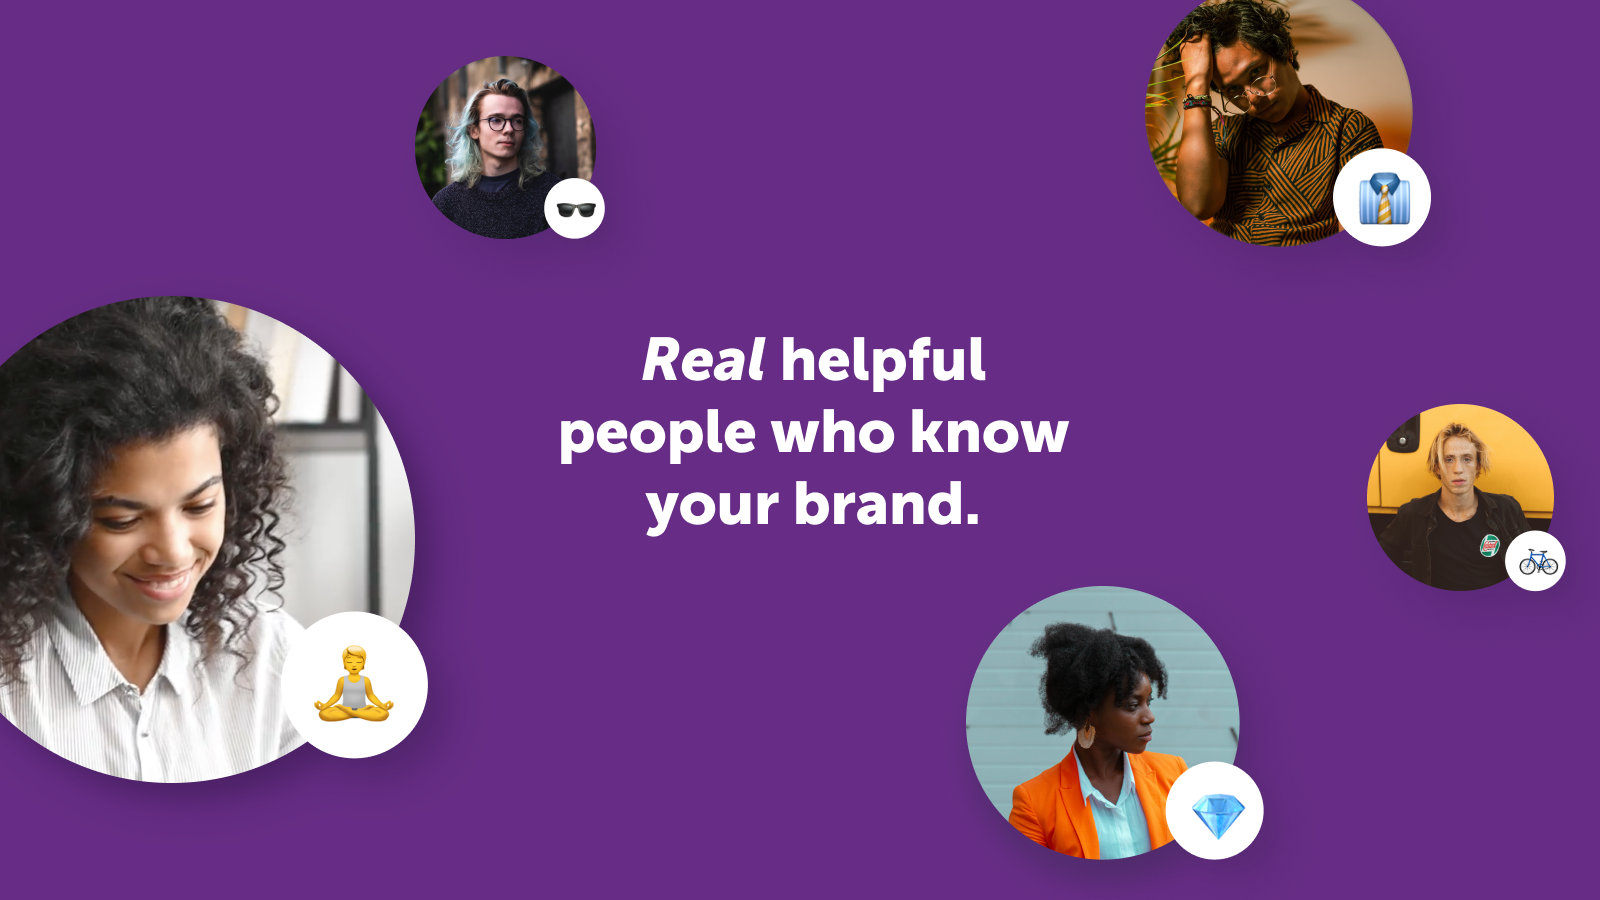 We assign passionate people who know your brand